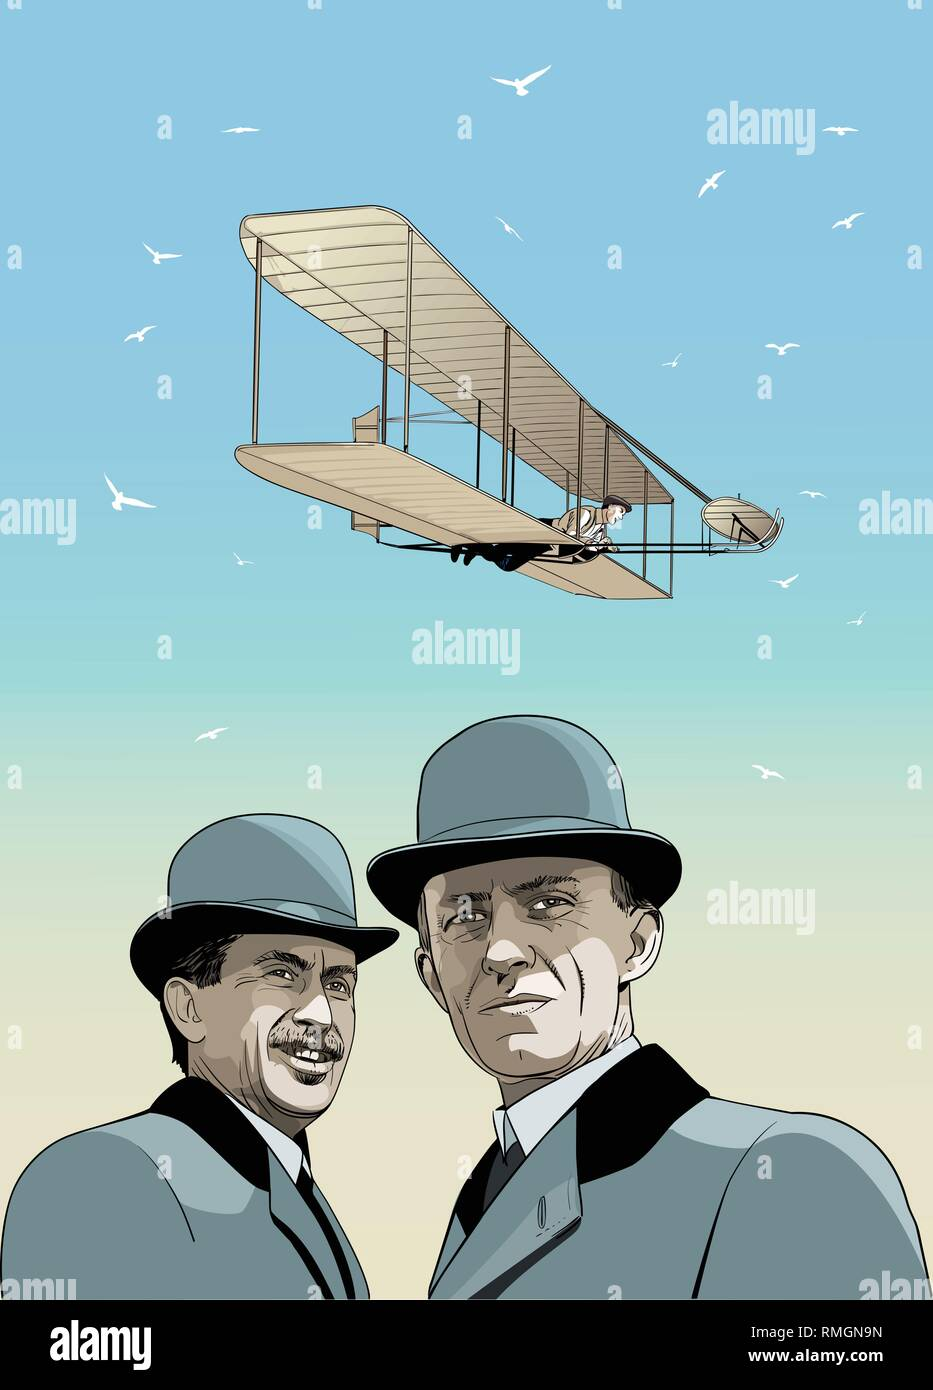 Wright Brothers portrait in line art illustration. First airplane's inventors. - Stock Vector